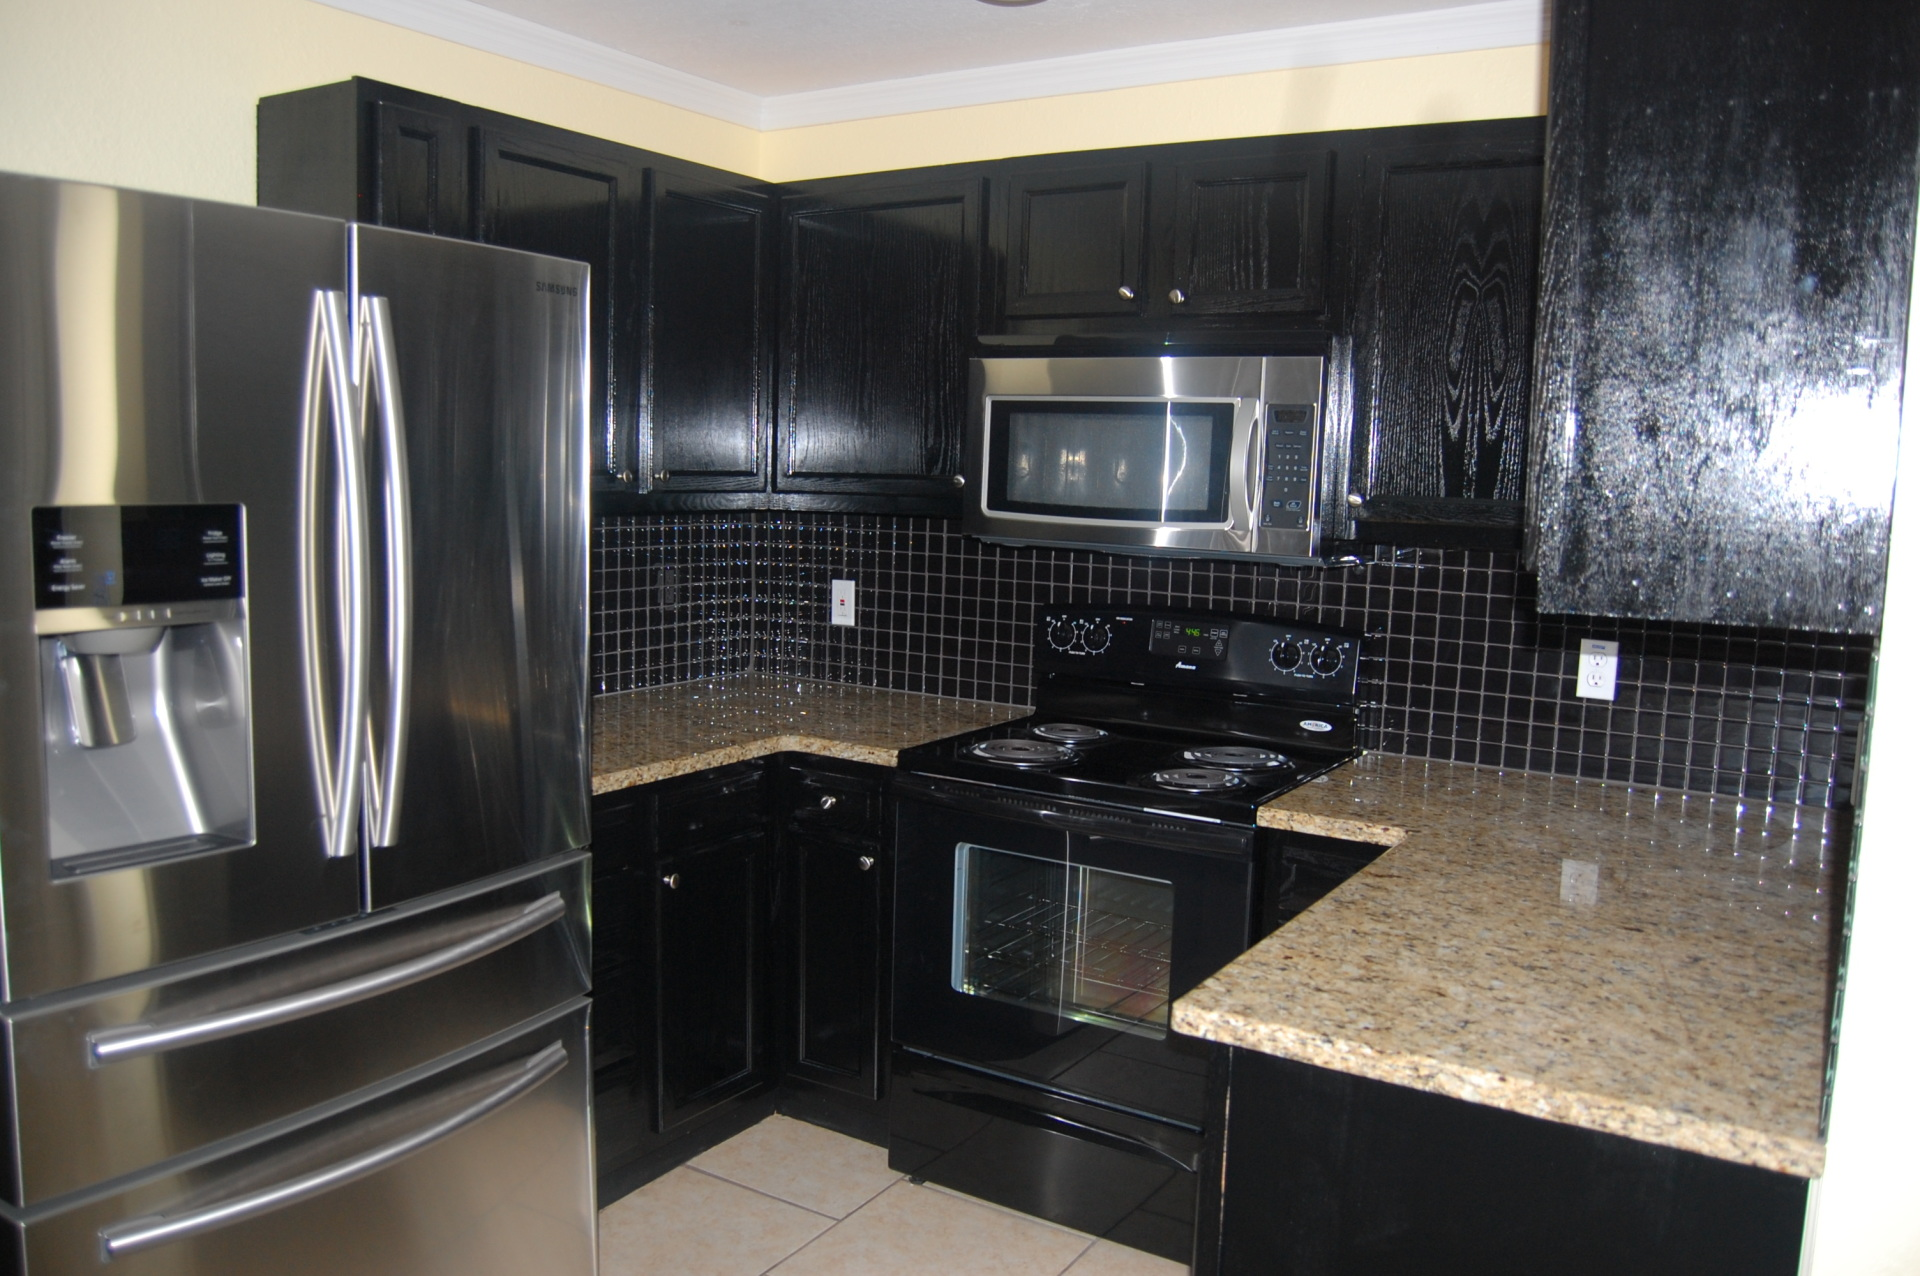 Pitch Black Sable Cabinetry with Stainless Steel